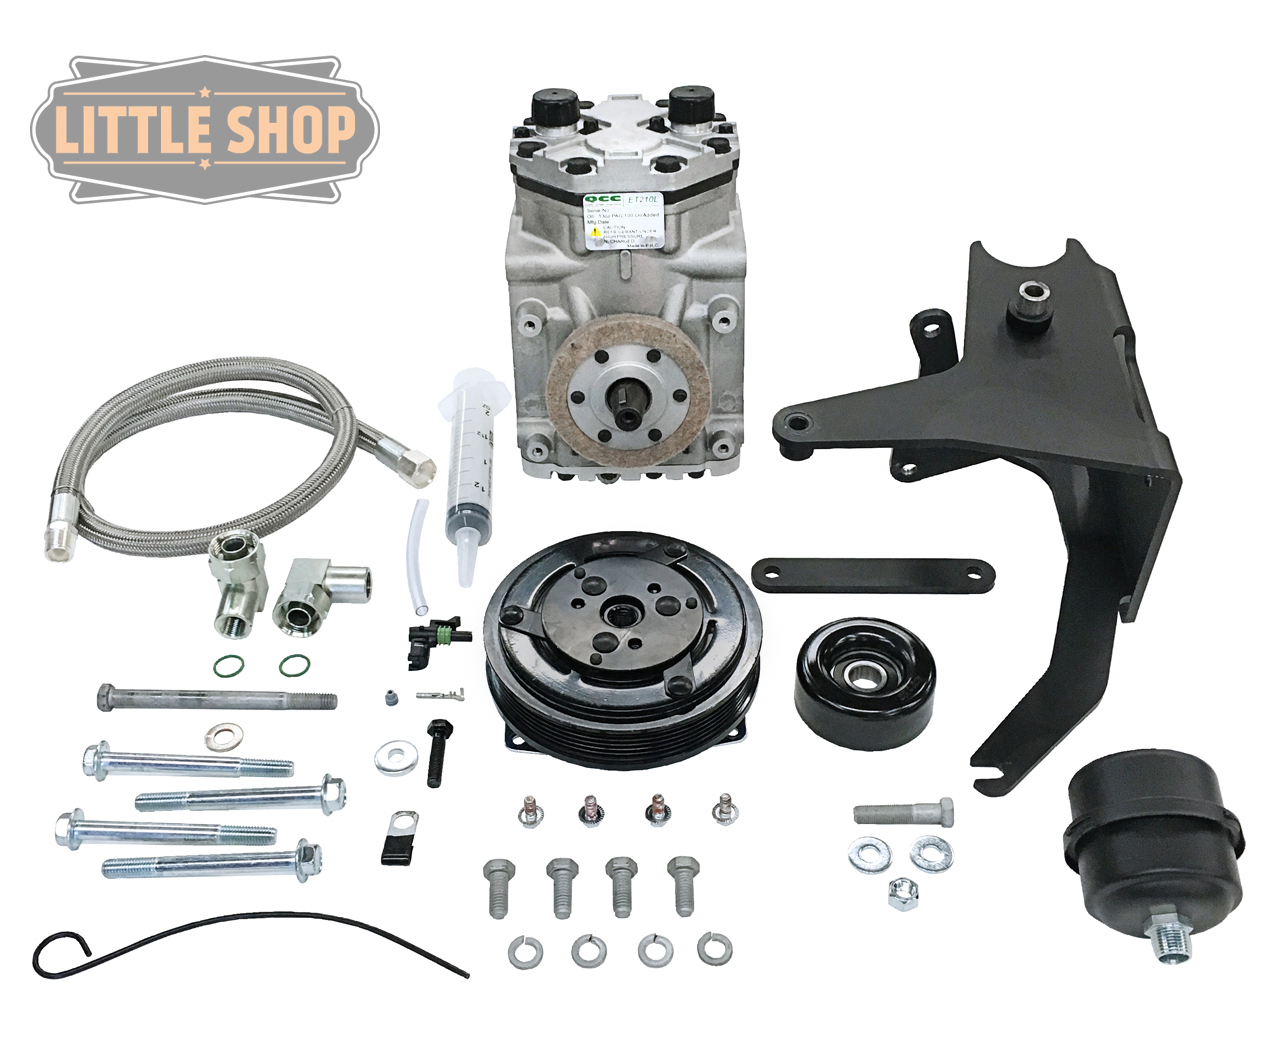 LSMFG-Vortec-EDC 96'-07' GM 4.3, 5.0, 5.7 Vortec Engine Driven Compressor Kit